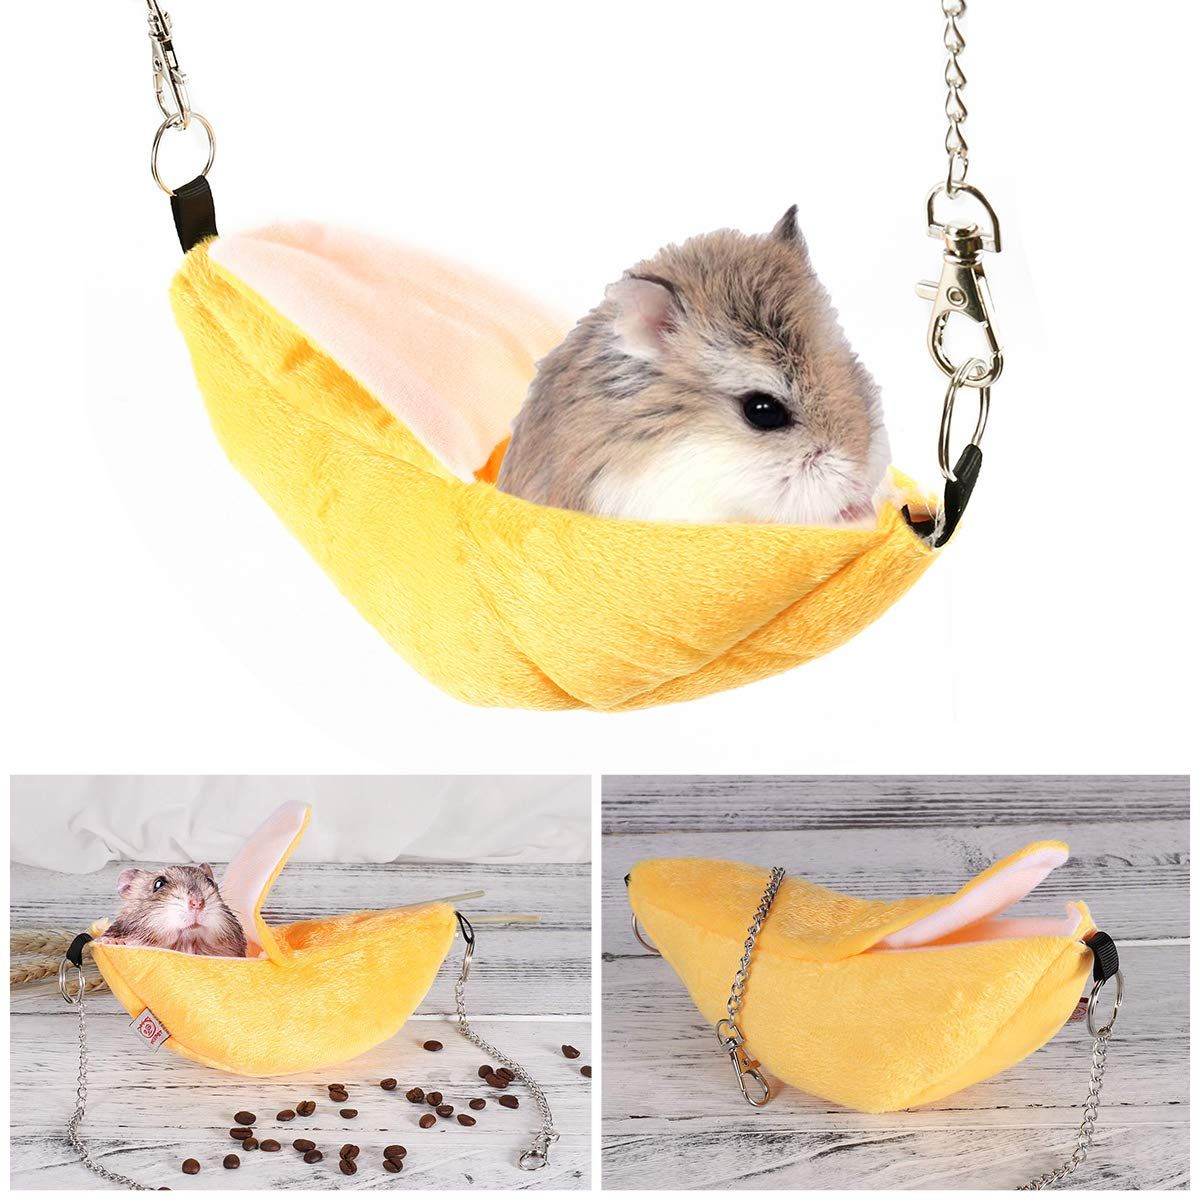 FLAdorepet Hamster Hanging Bed House Hammock Cute Fruits Winter Warm Fleece Little Rat Mouse Cage Nest Hamster Accessories